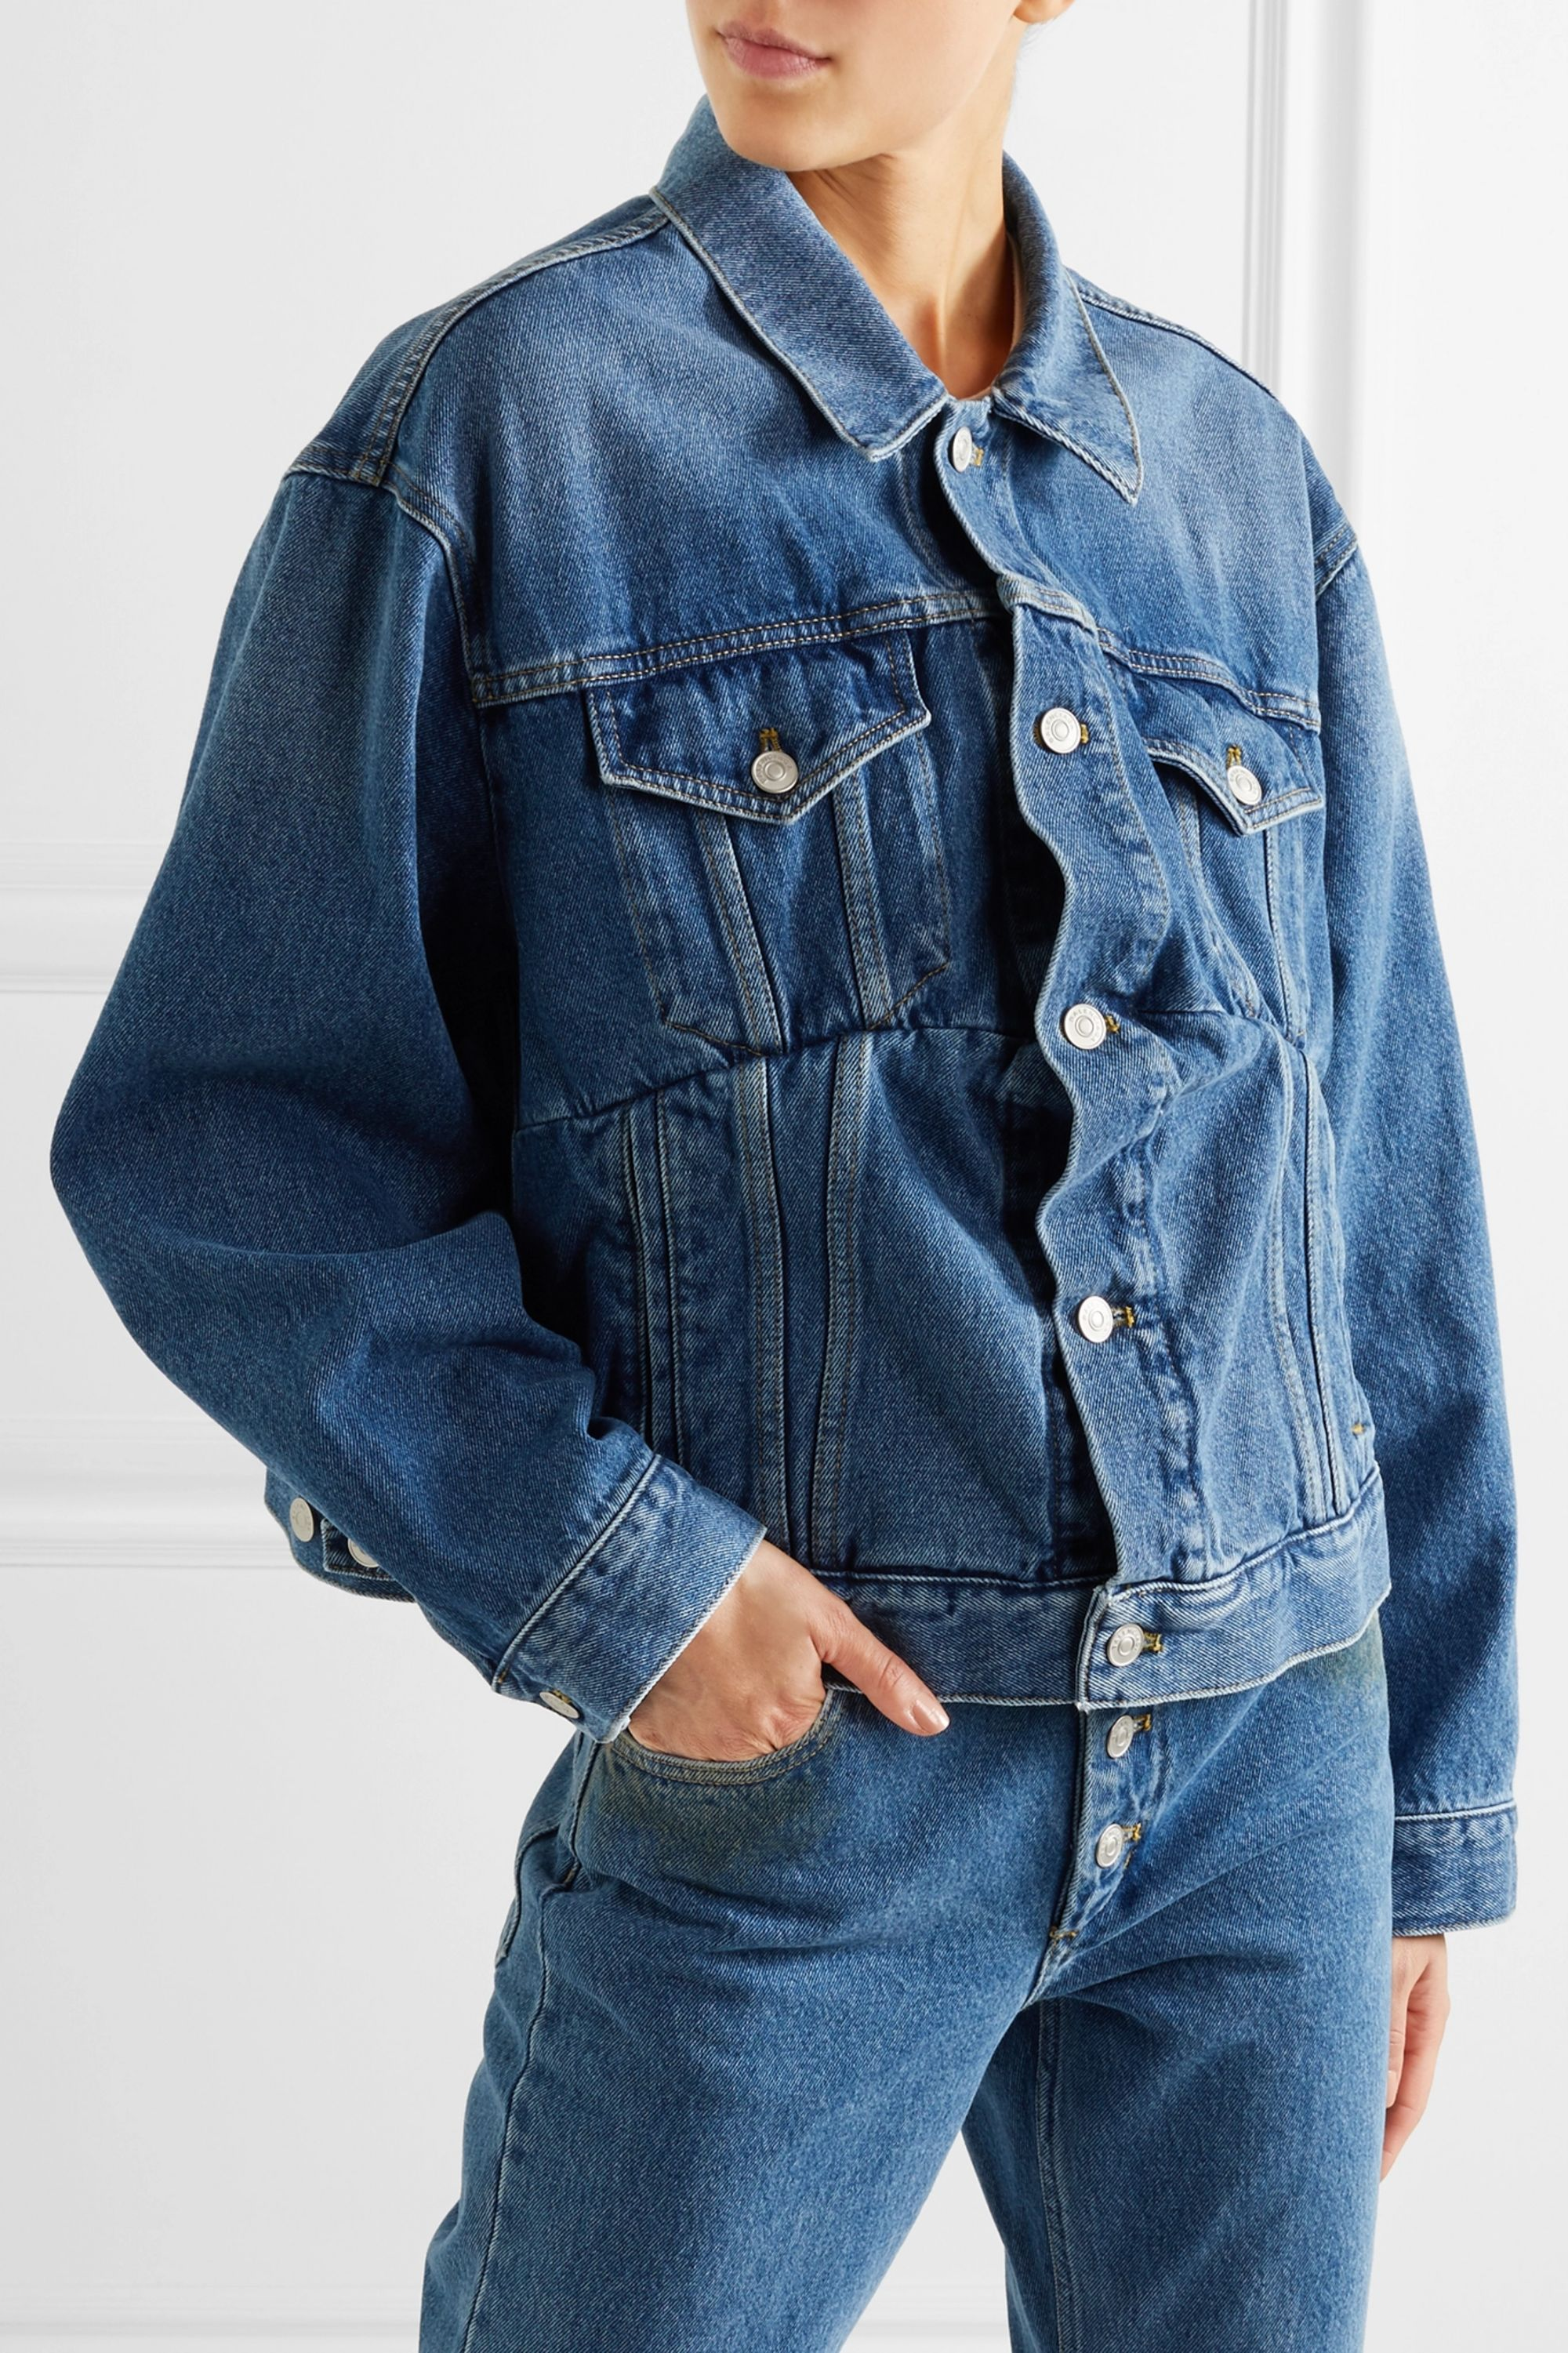 Balenciaga Swing oversized denim jacket